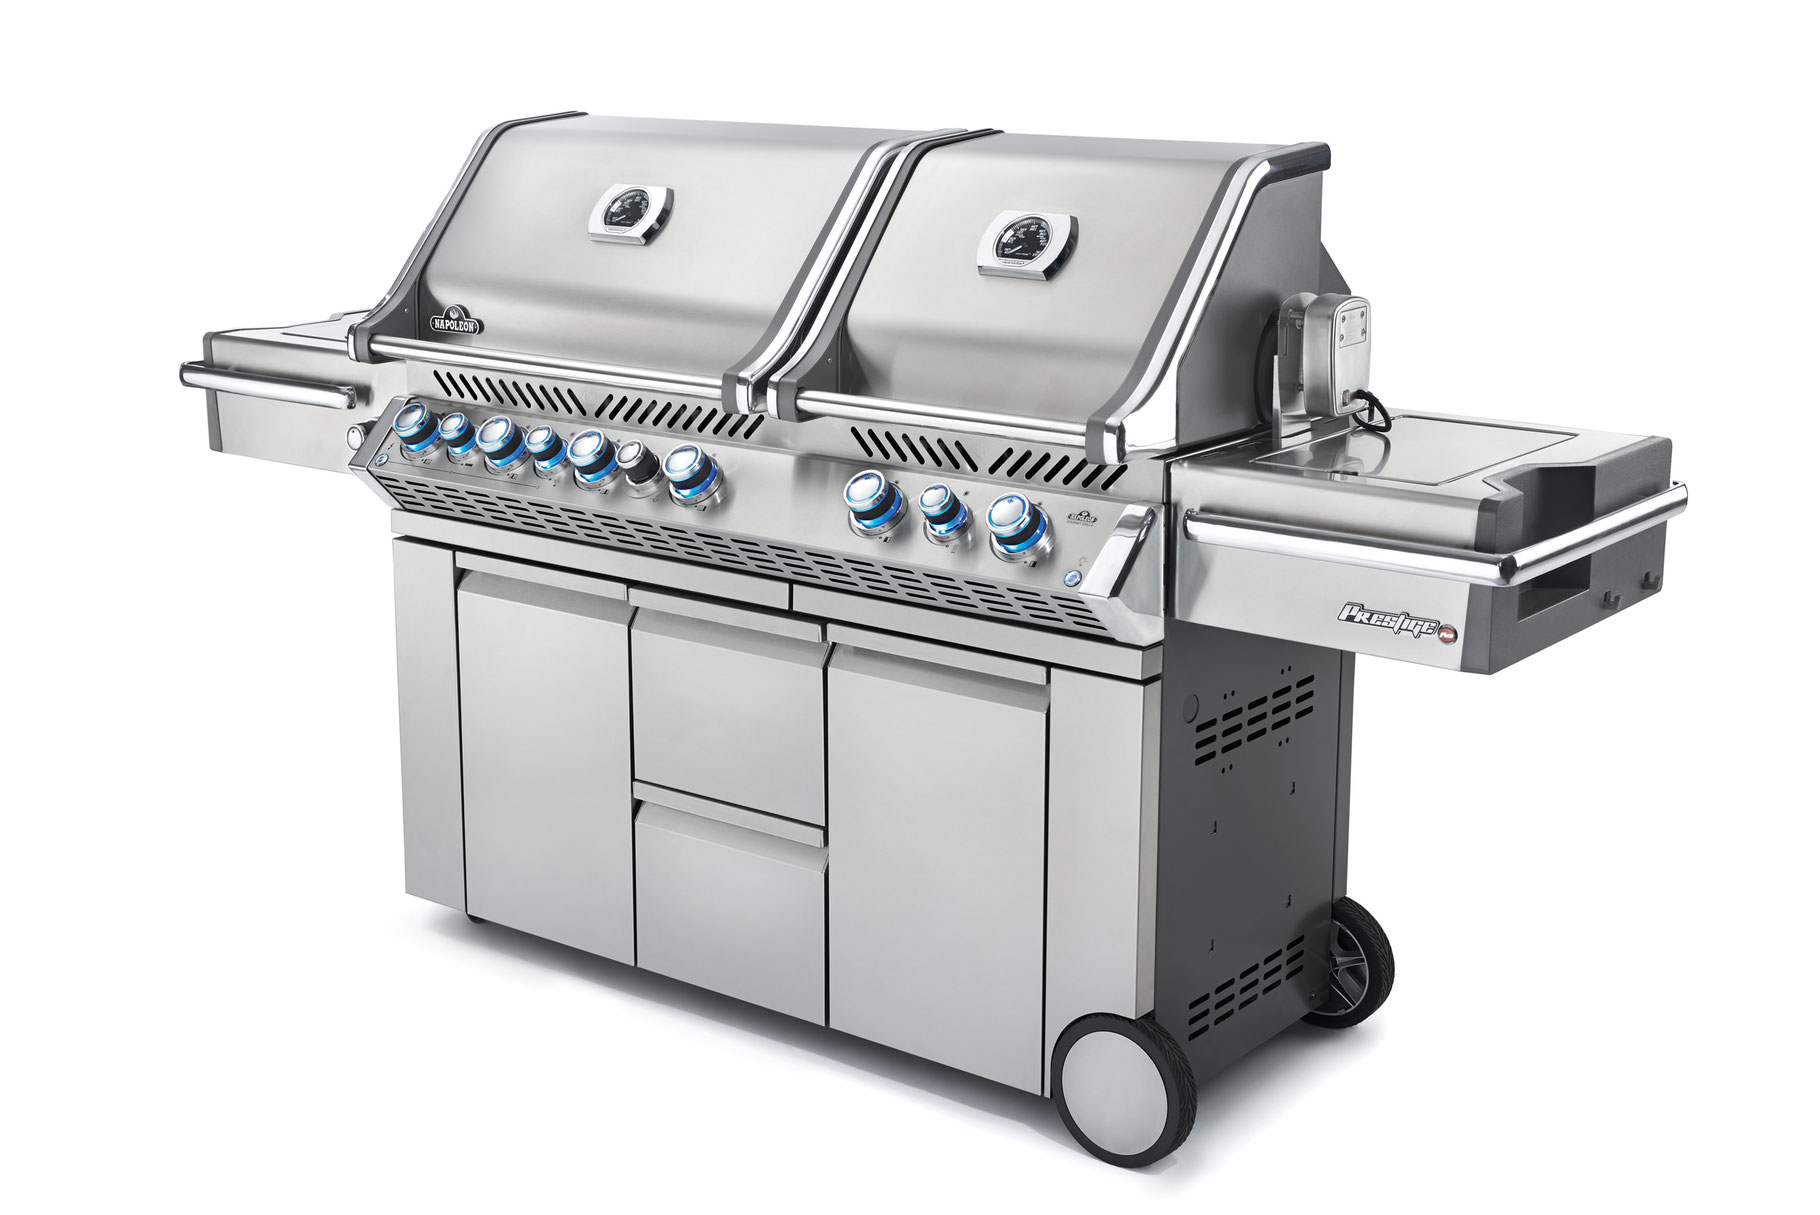 Bester Grill